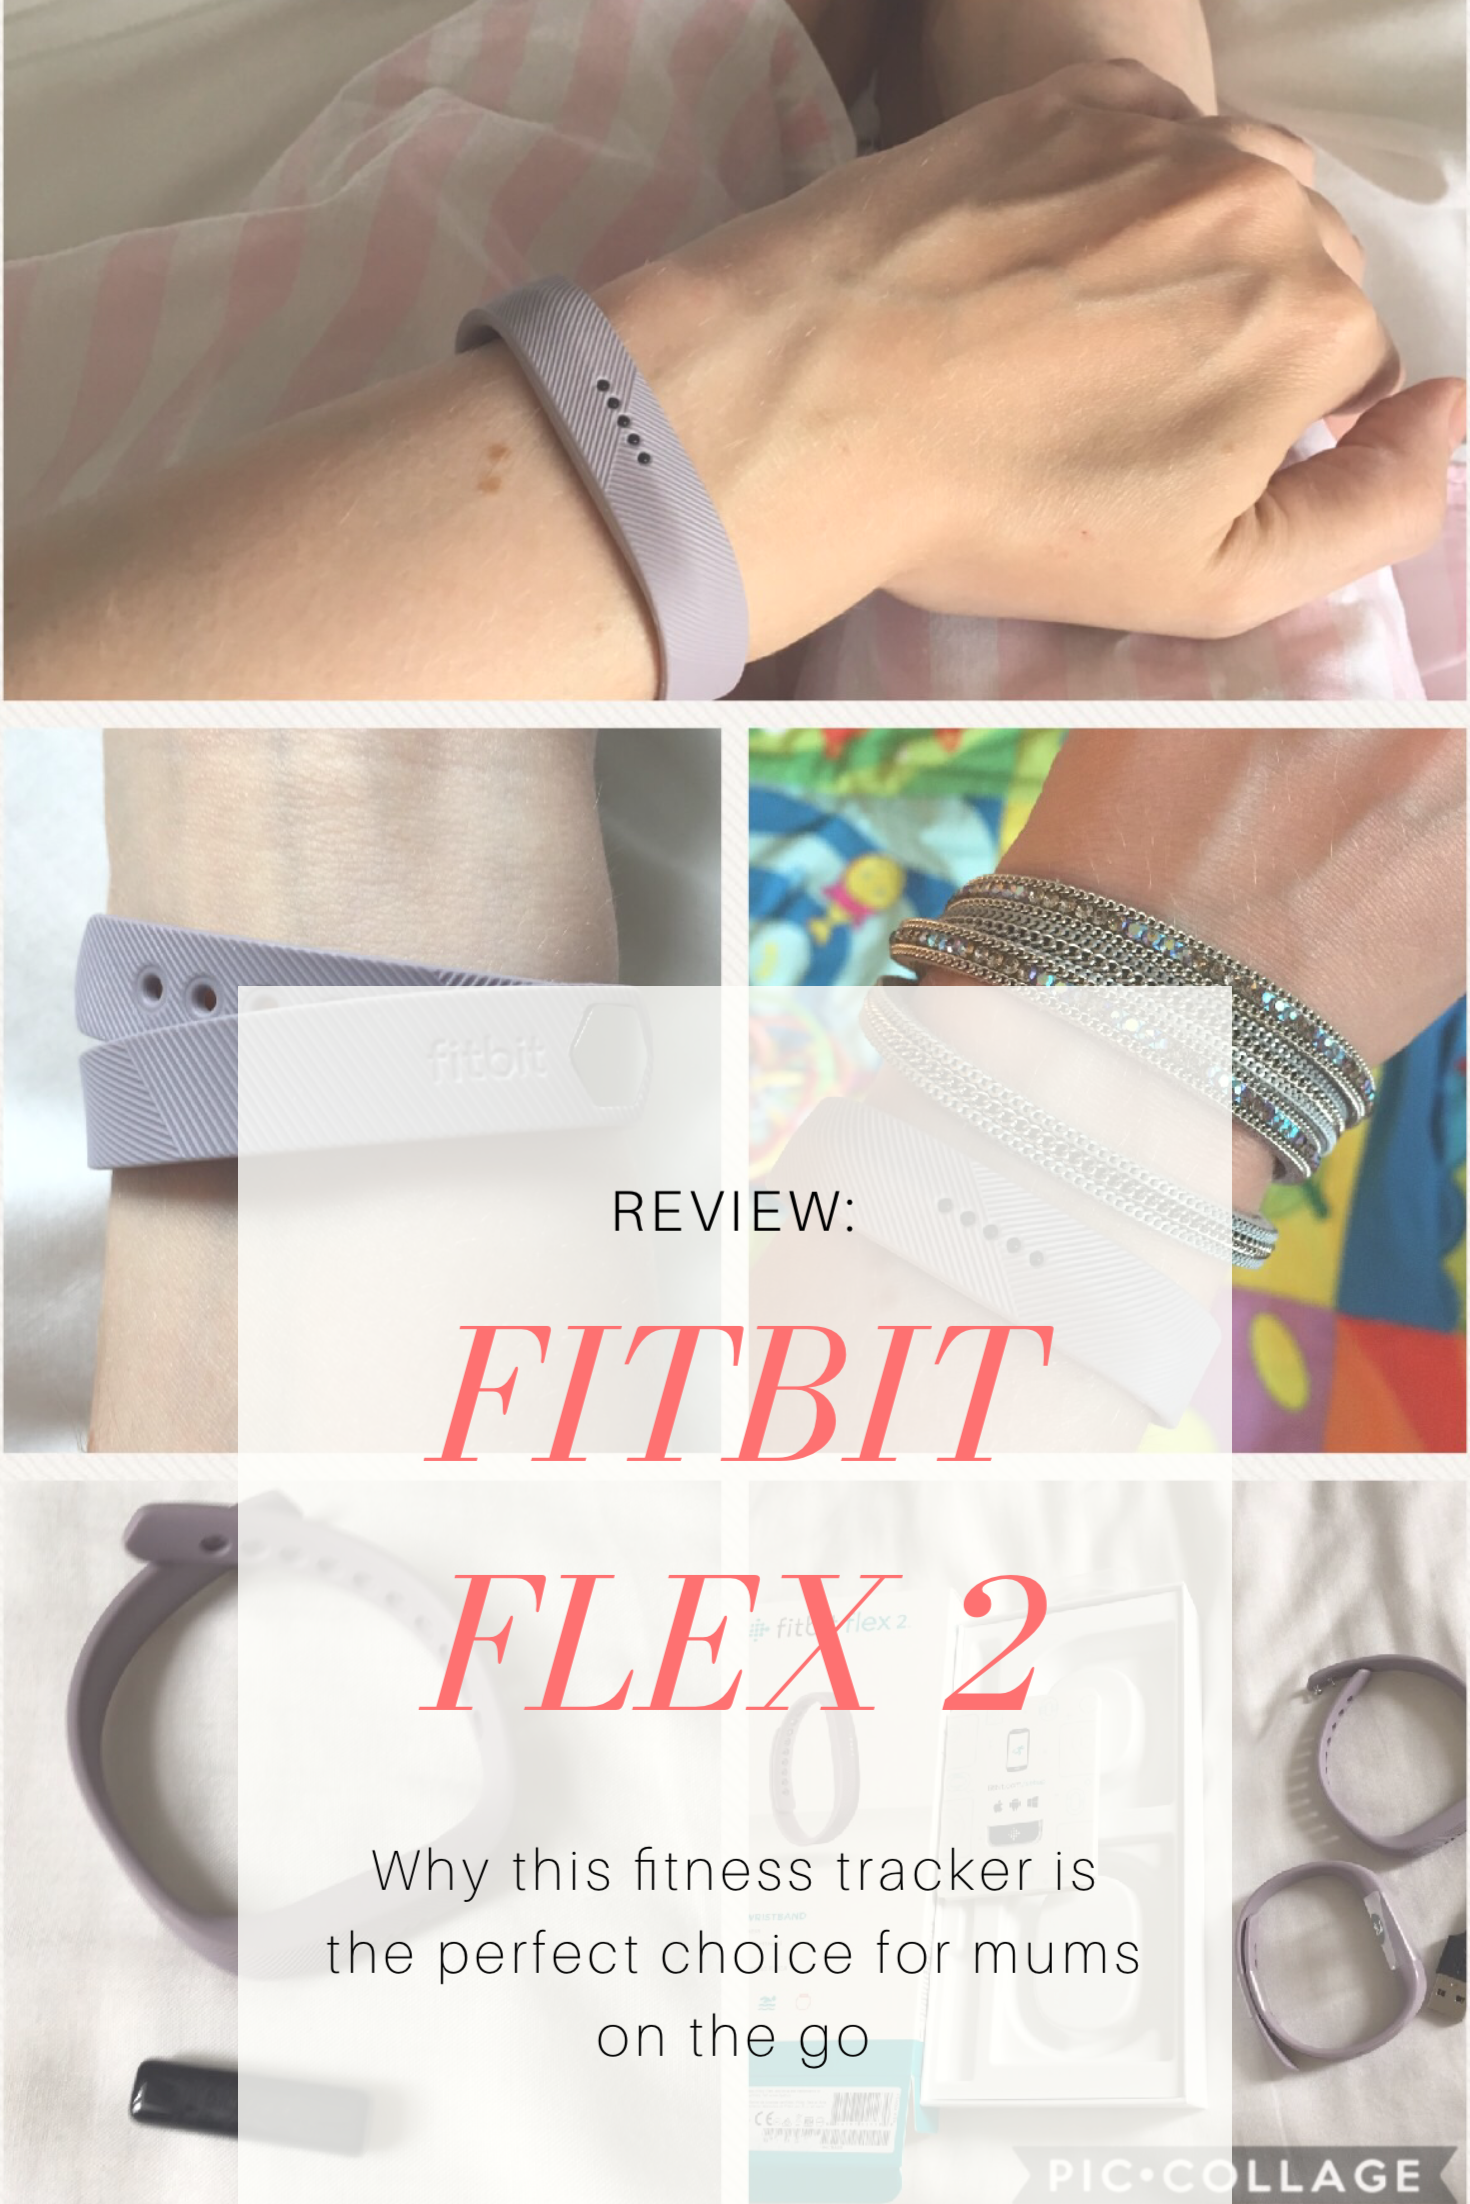 Review of the Fitbit Flex 2 fitness tracker